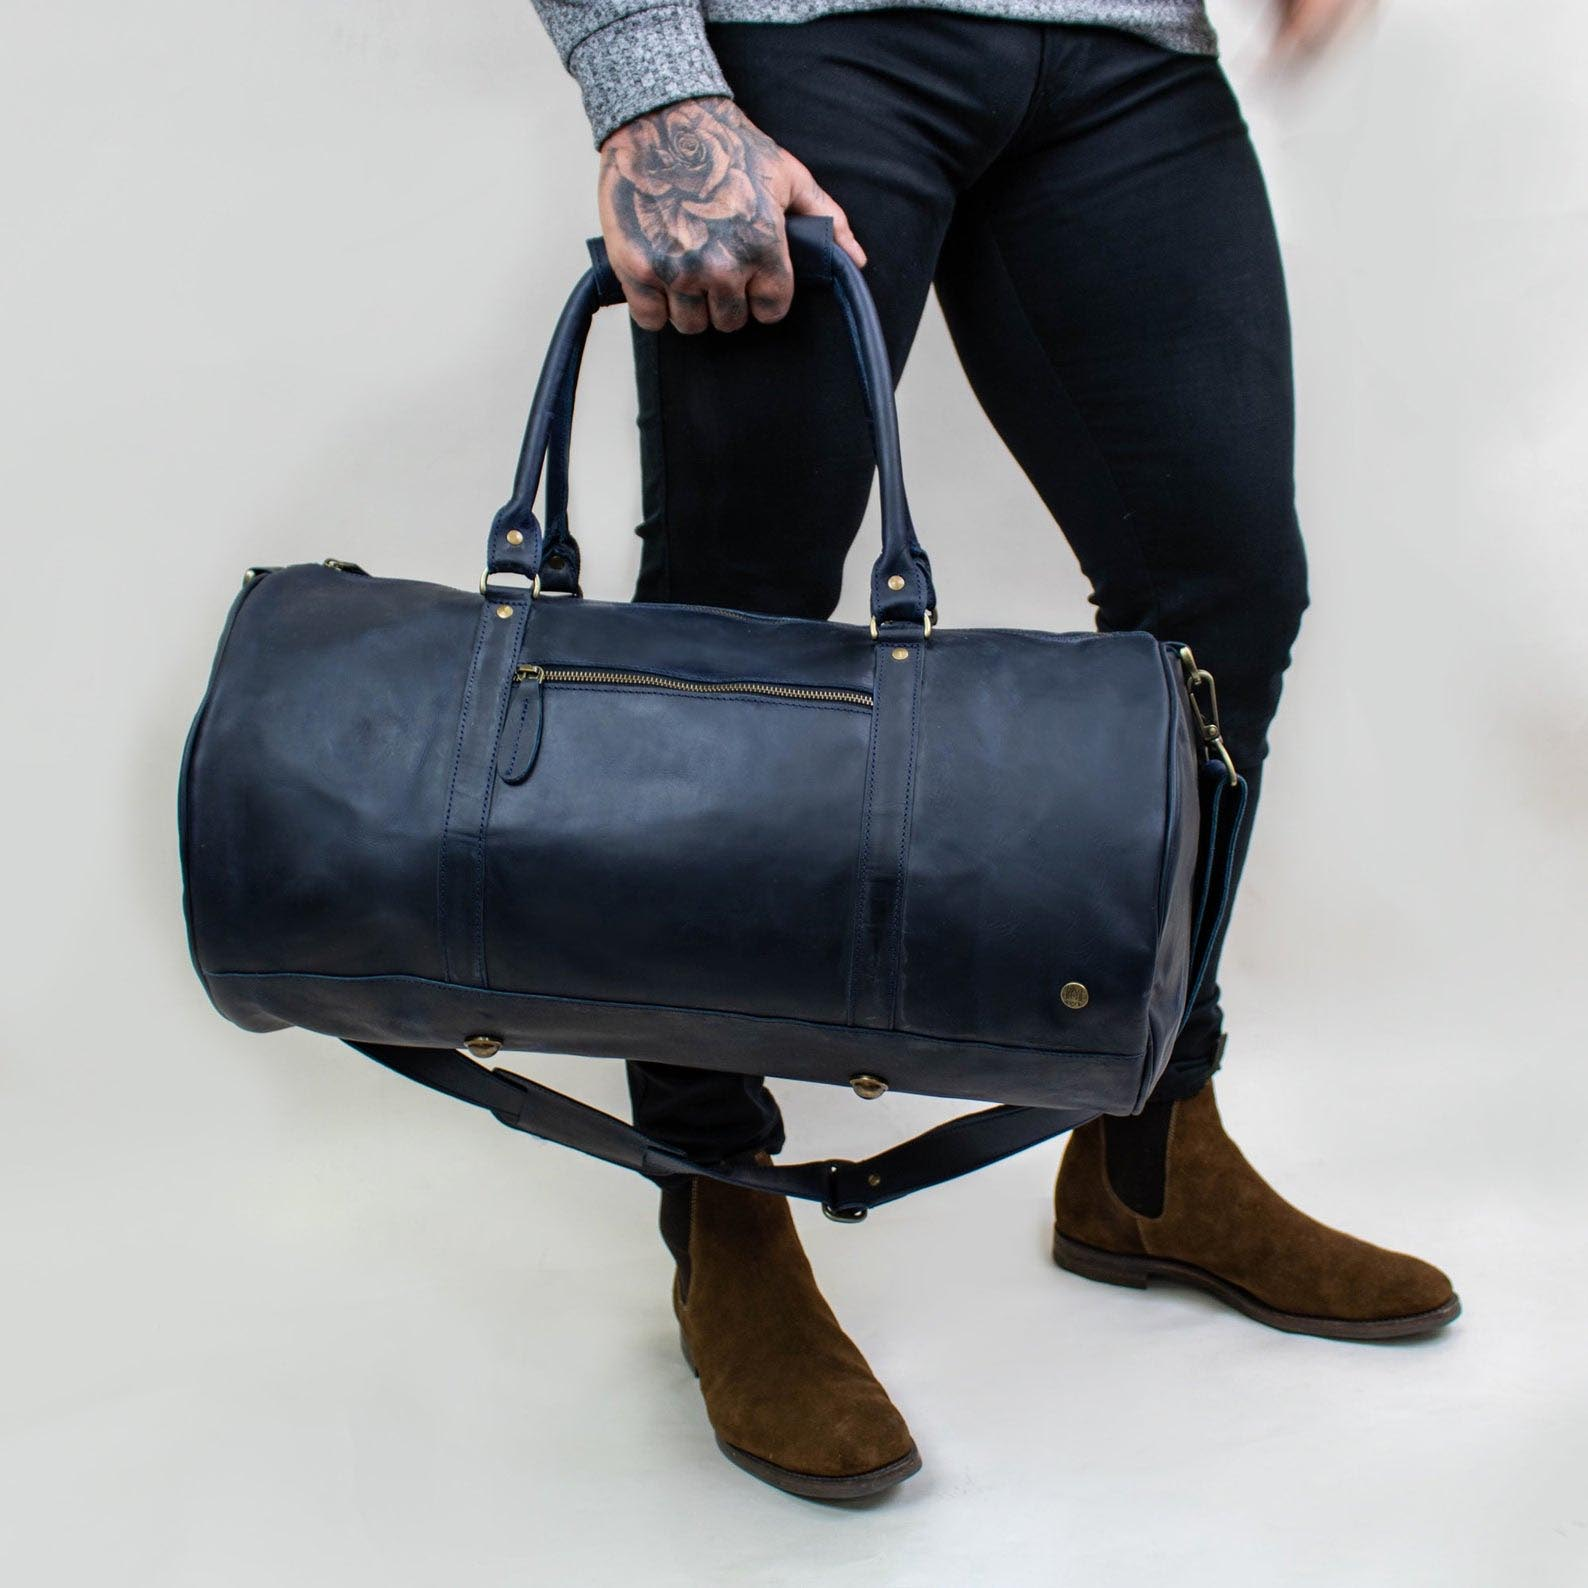 Gift Idea - Black Leather Weekend Bag